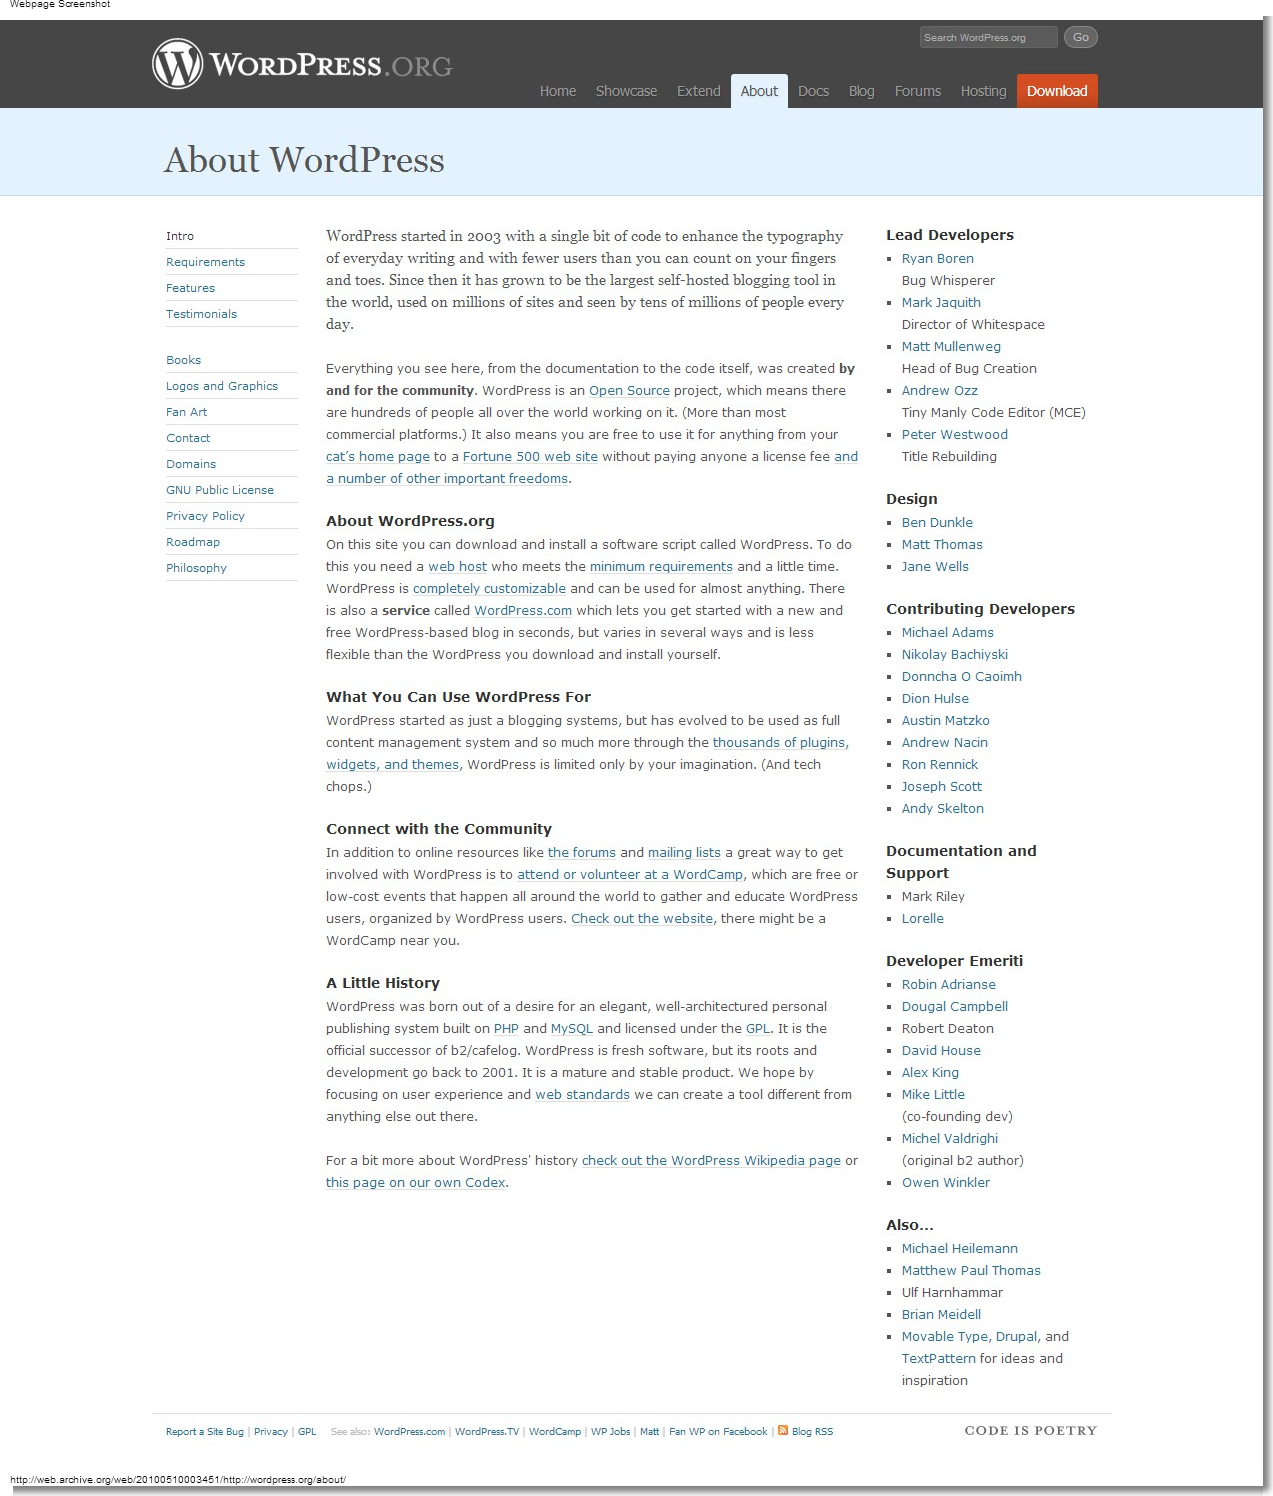 May 10, 2010 - WordPress - About